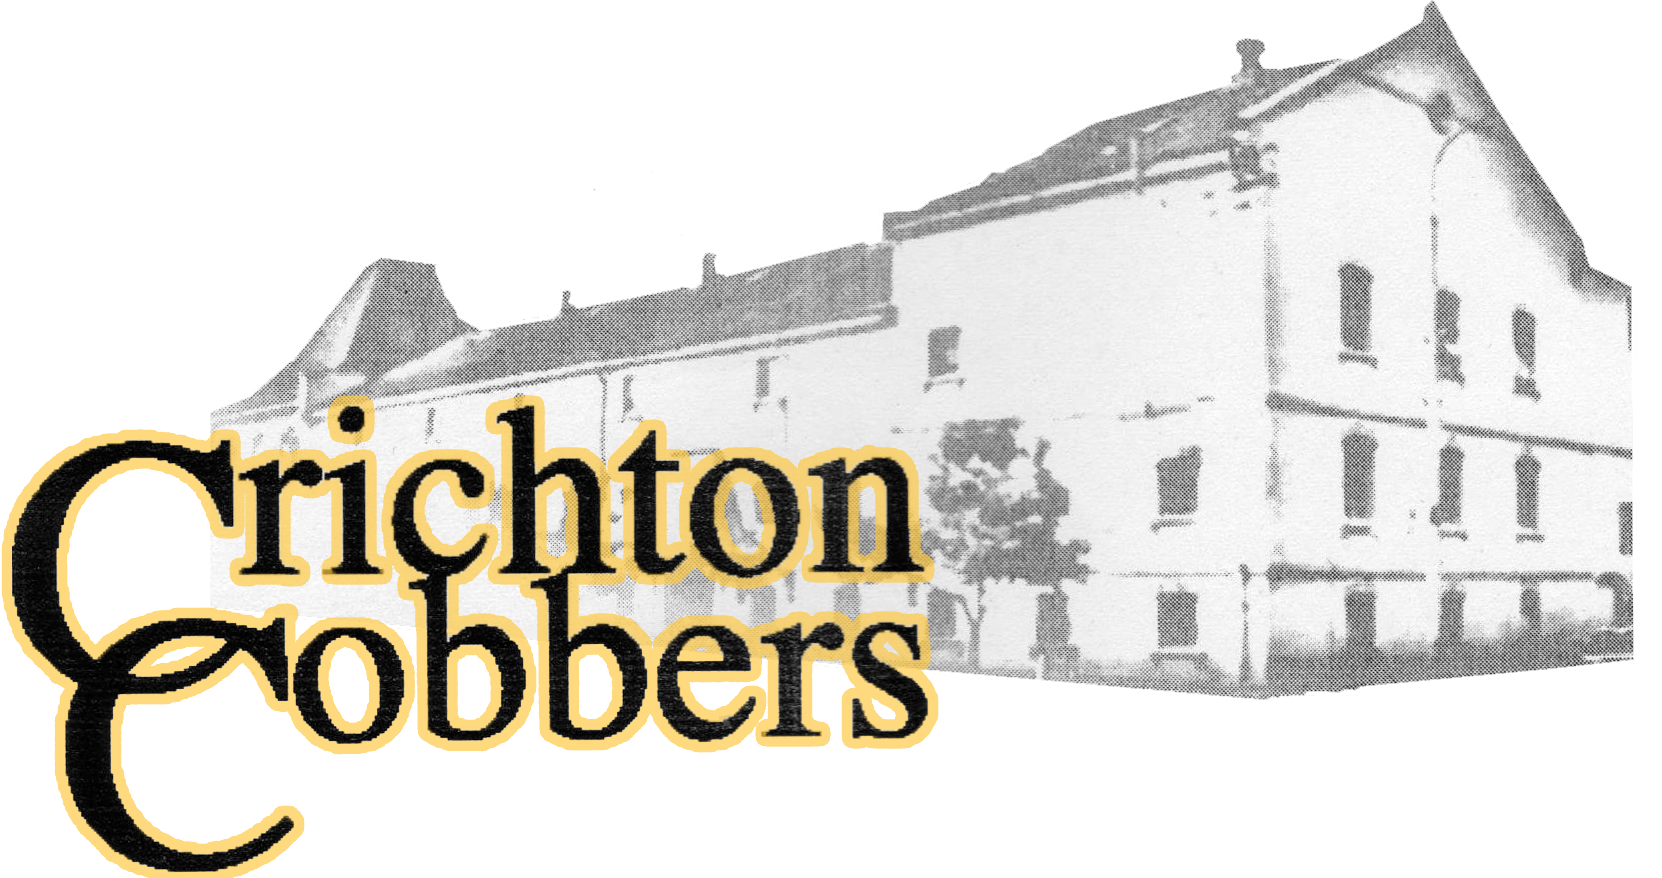 Crichton Cobbers' Scholarship Fund